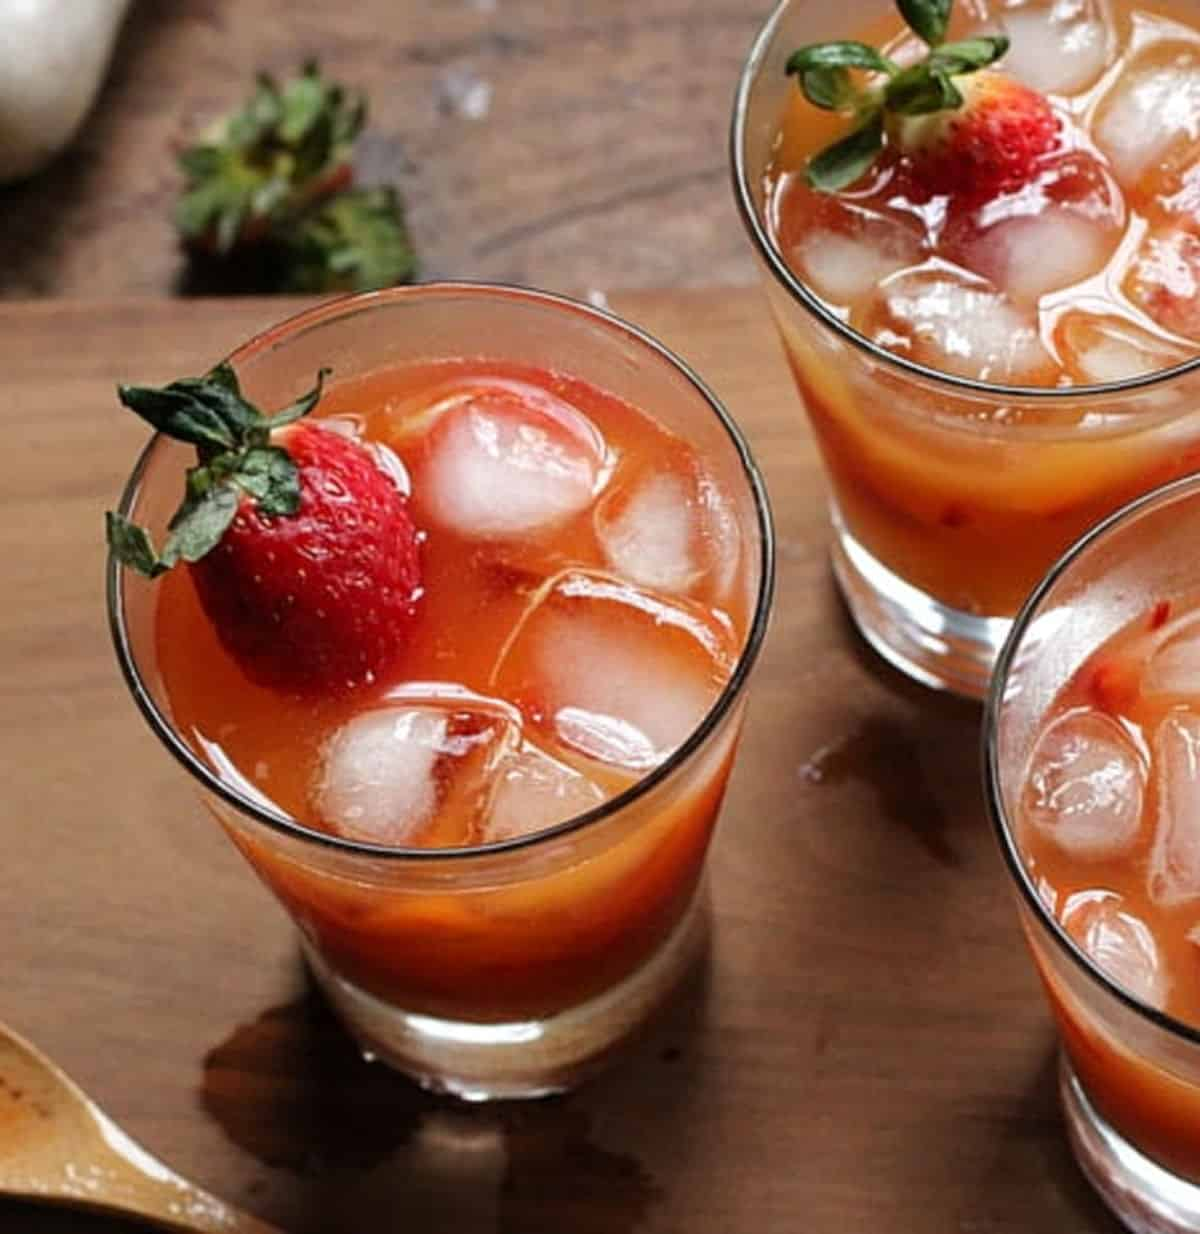 Top view of several glasses with strawberry drink on wooden board